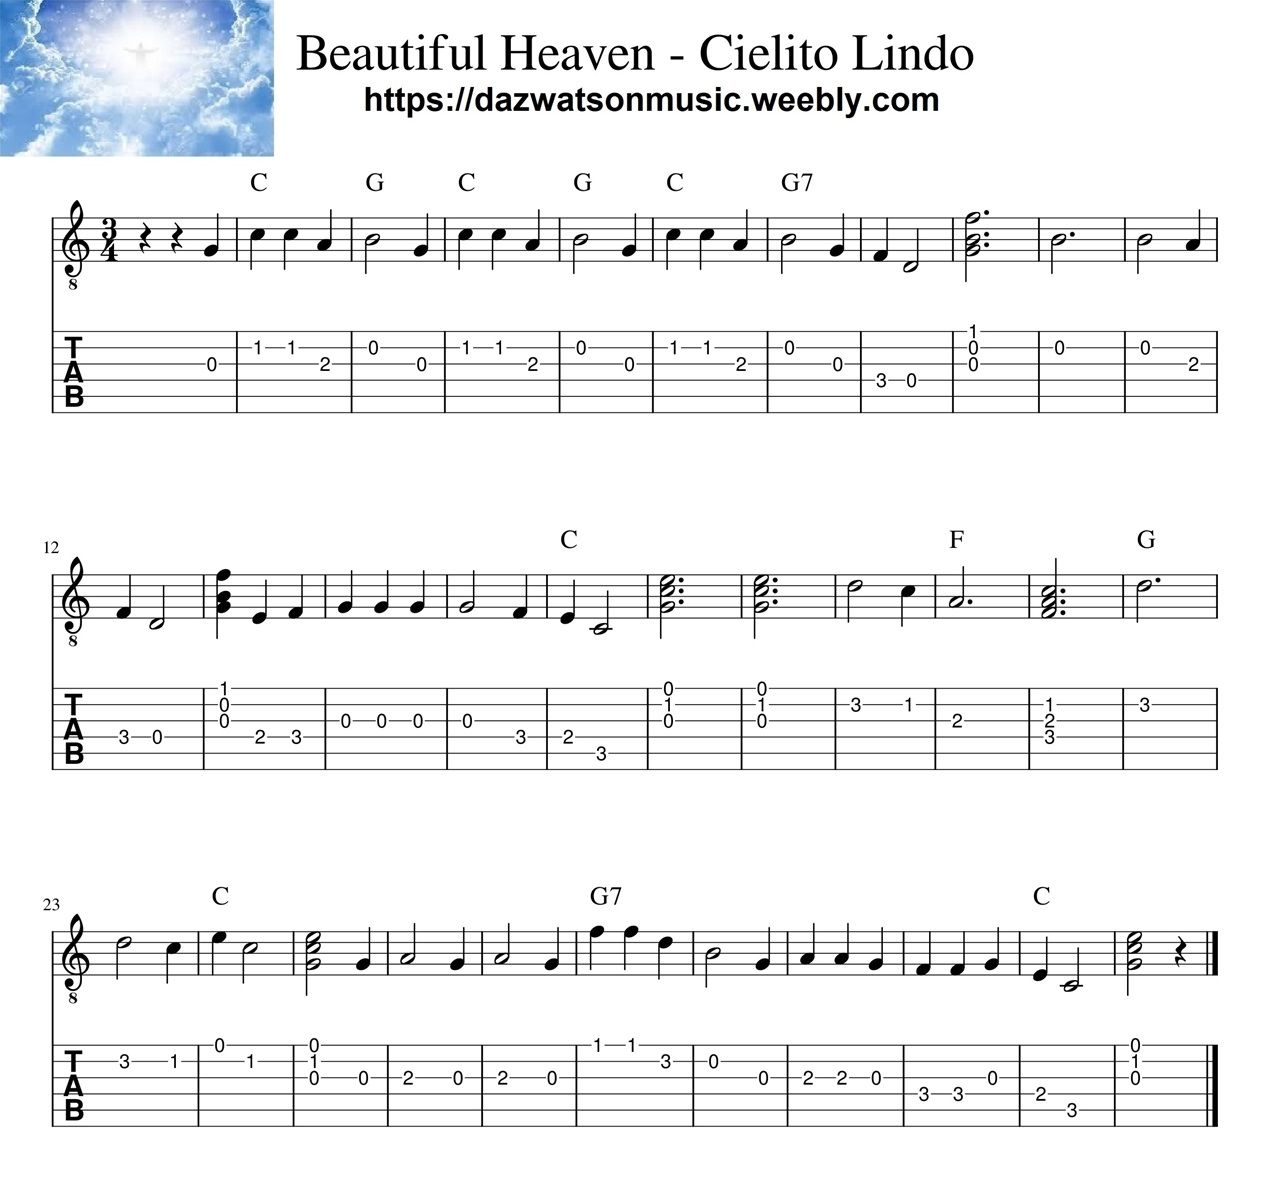 Cielito Lindo Beautiful Heaven Easy Classical Guitar Tab Guitar Tabs Classical Guitar Guitar Tabs Songs